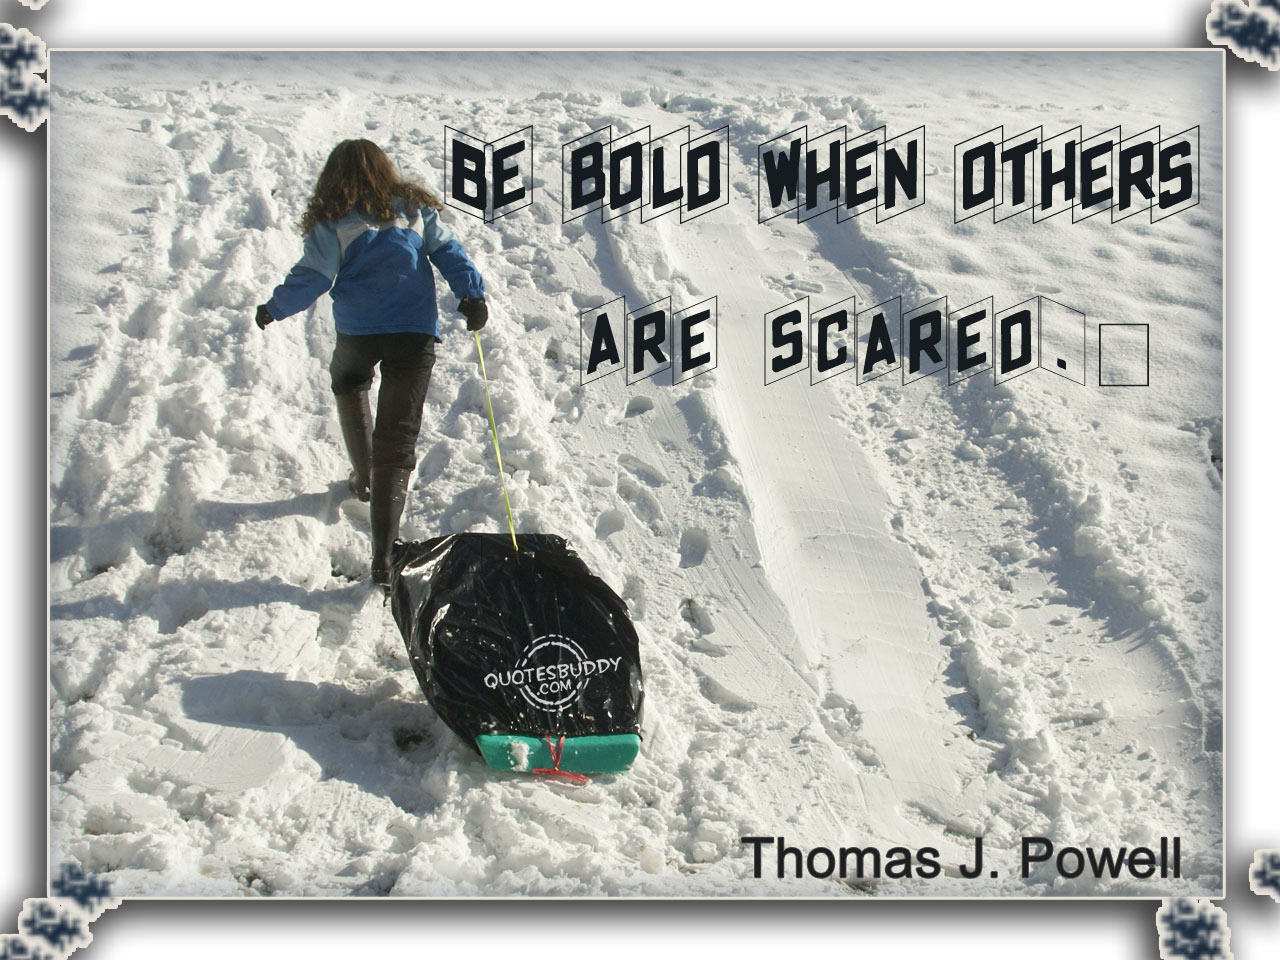 Be Bold When Others Are Scared. Thomas J. Powell